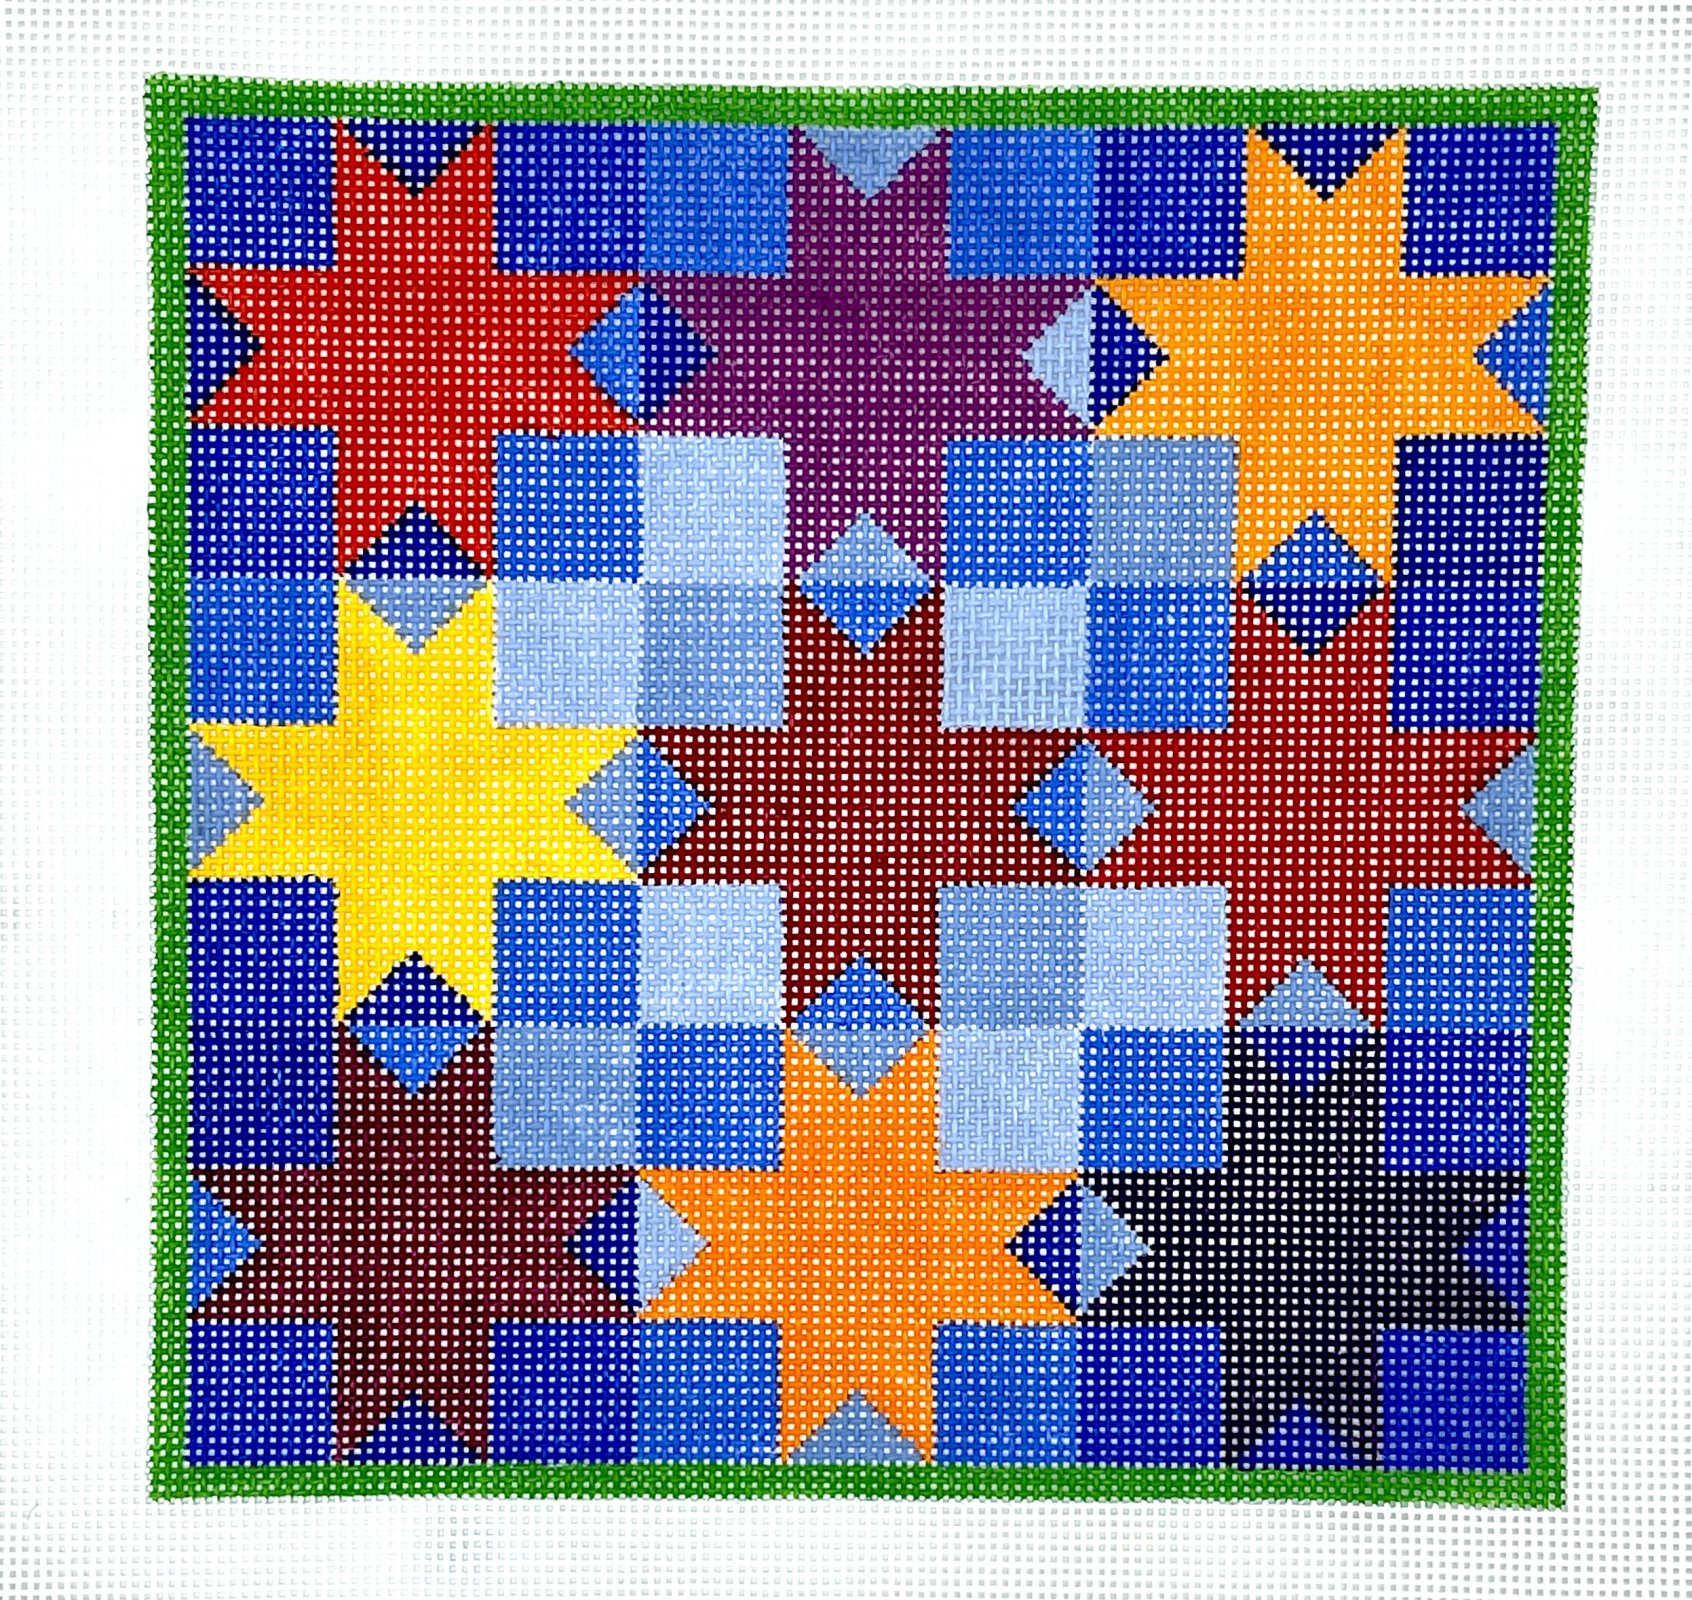 "8-Pointed Star/Quilt/Tic Tac Toe C - 13m - 9""x9"